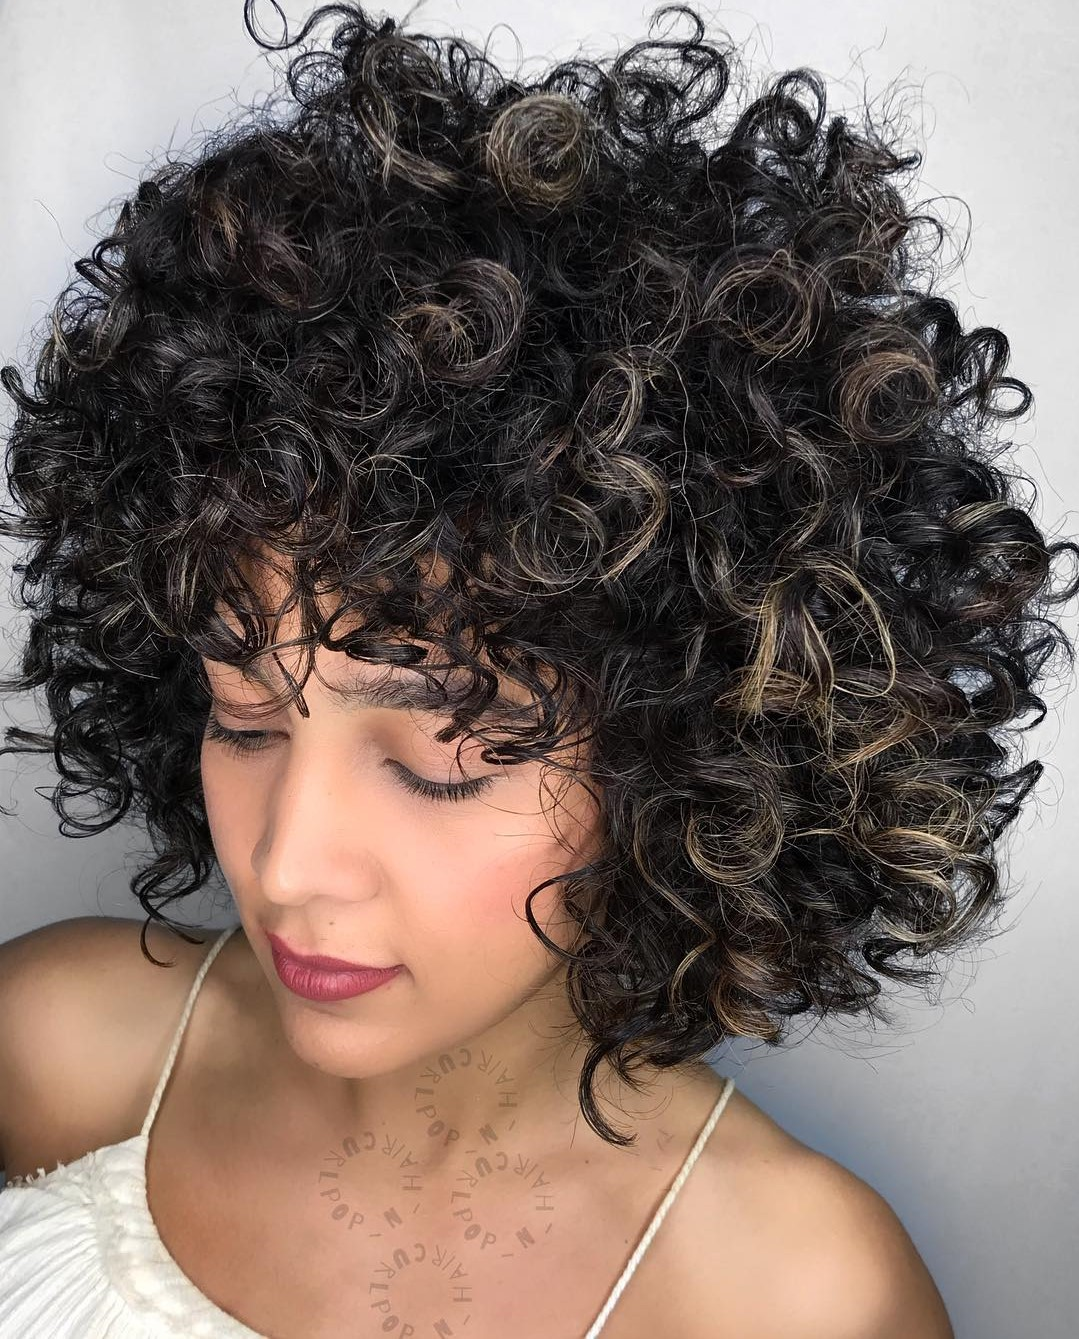 Dark Curly Hairstyle with Bangs